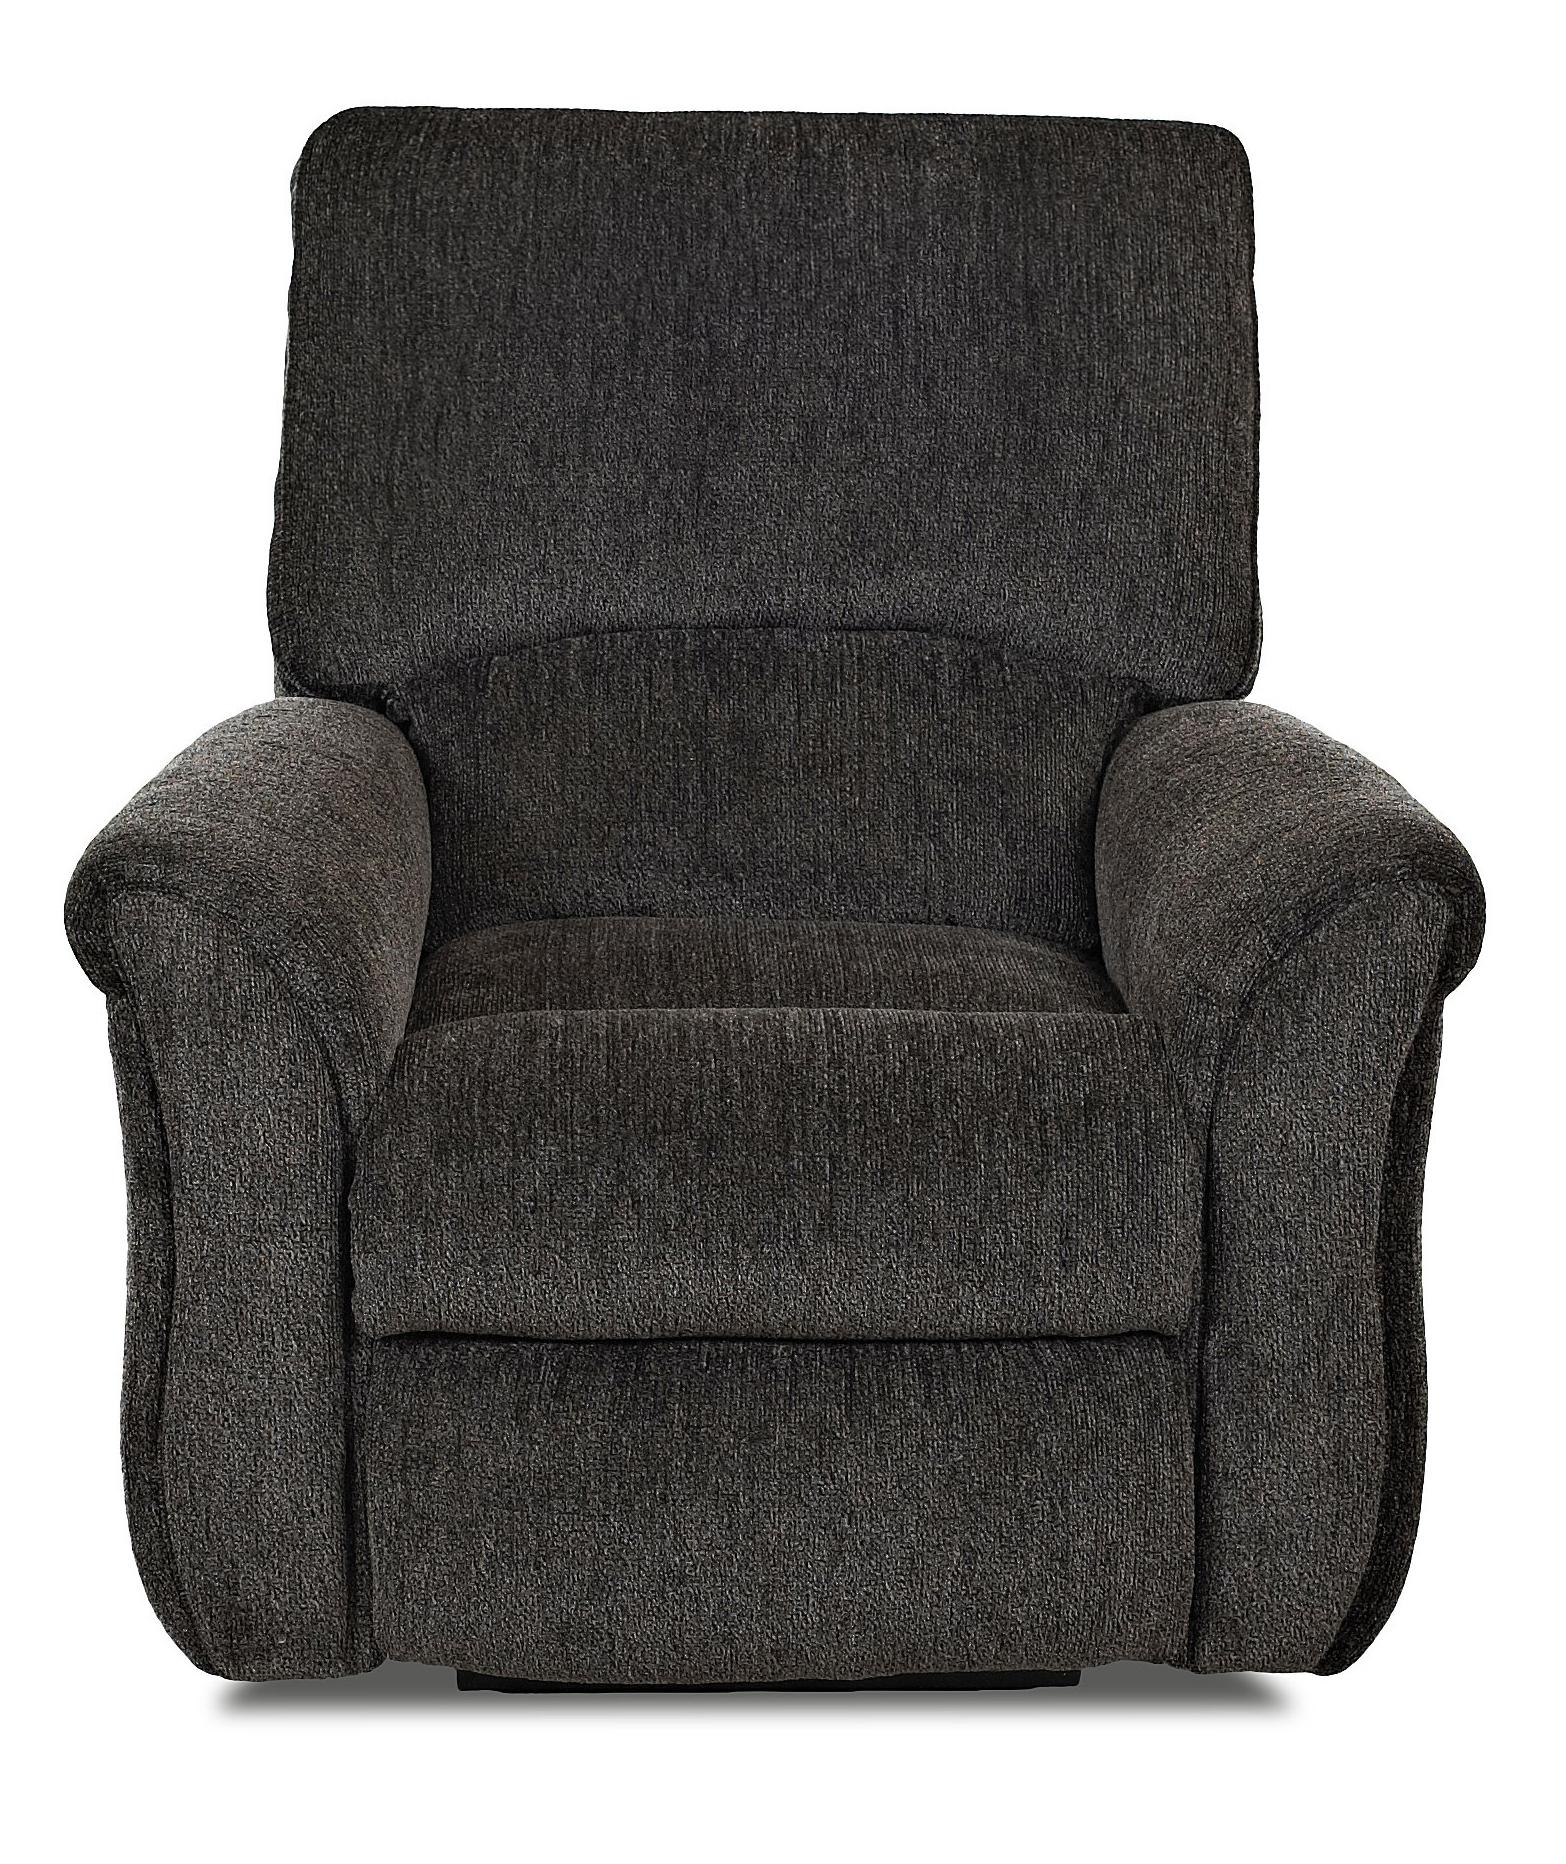 Olson Transitional Gliding Reclining Chair by Klaussner at Lapeer Furniture & Mattress Center